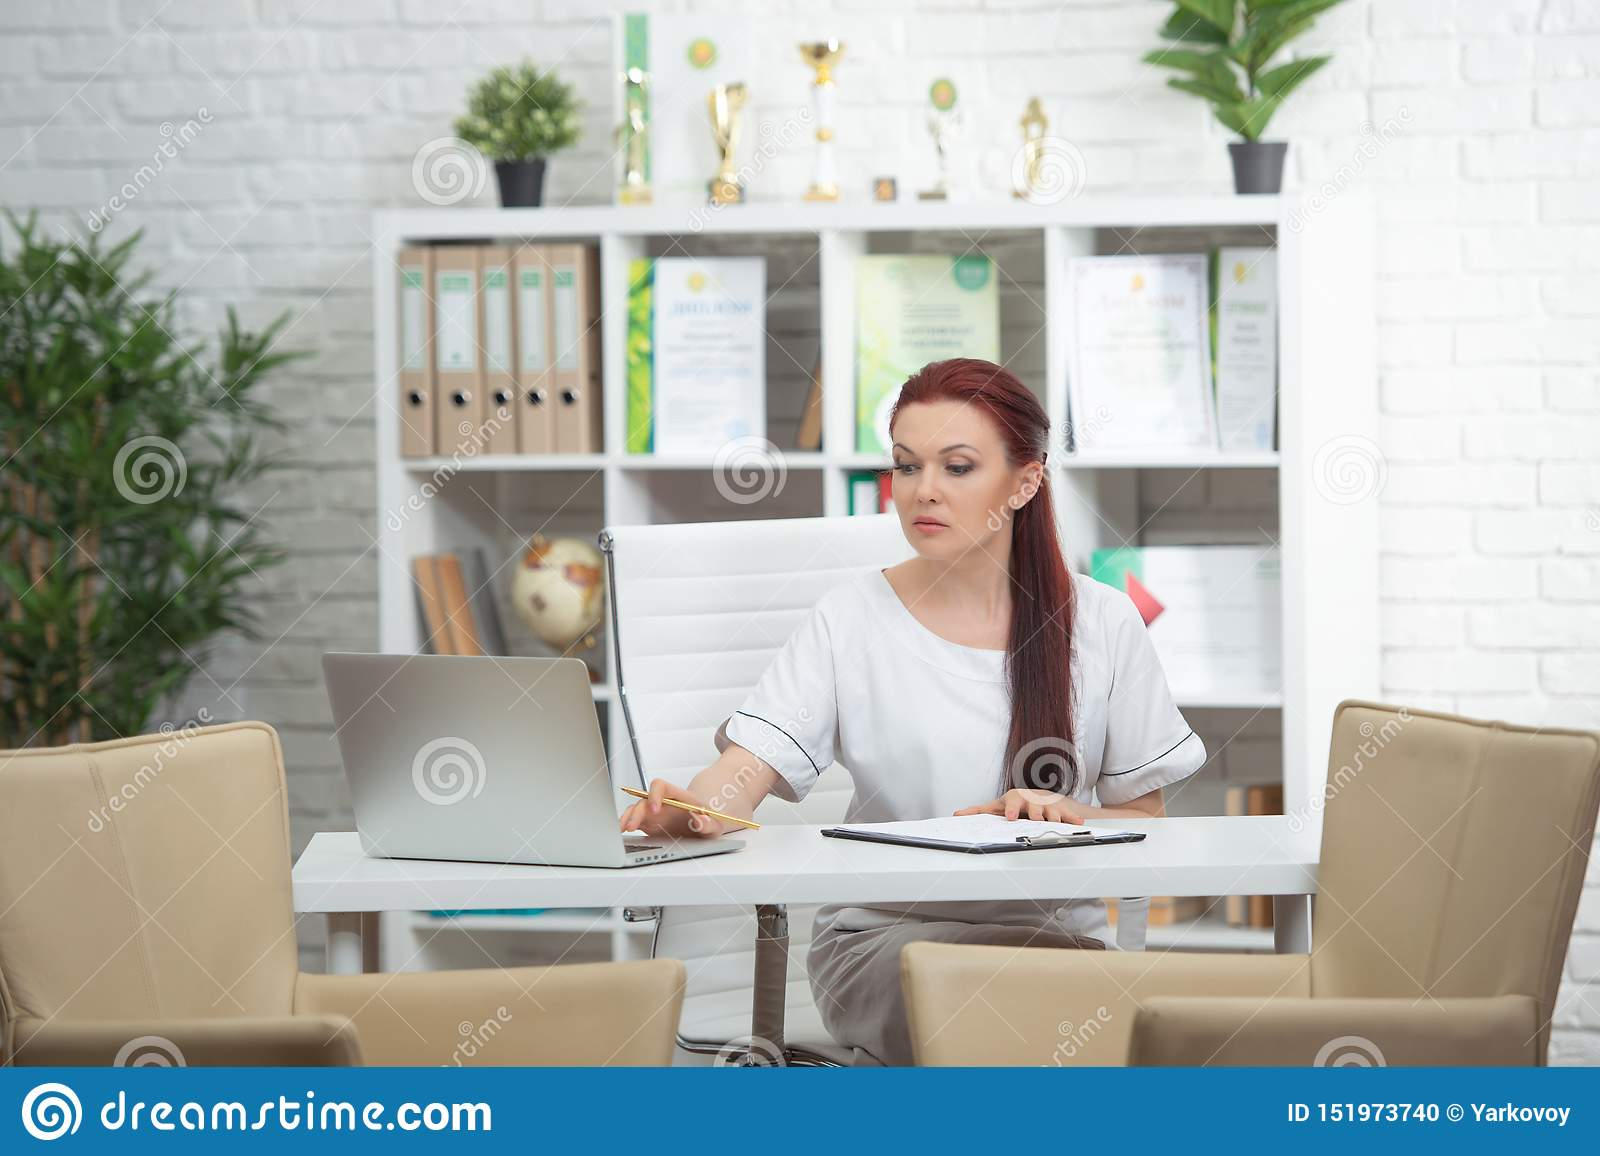 Confident woman doctor sitting at the table in her office and smiling at camera. healthcare concept